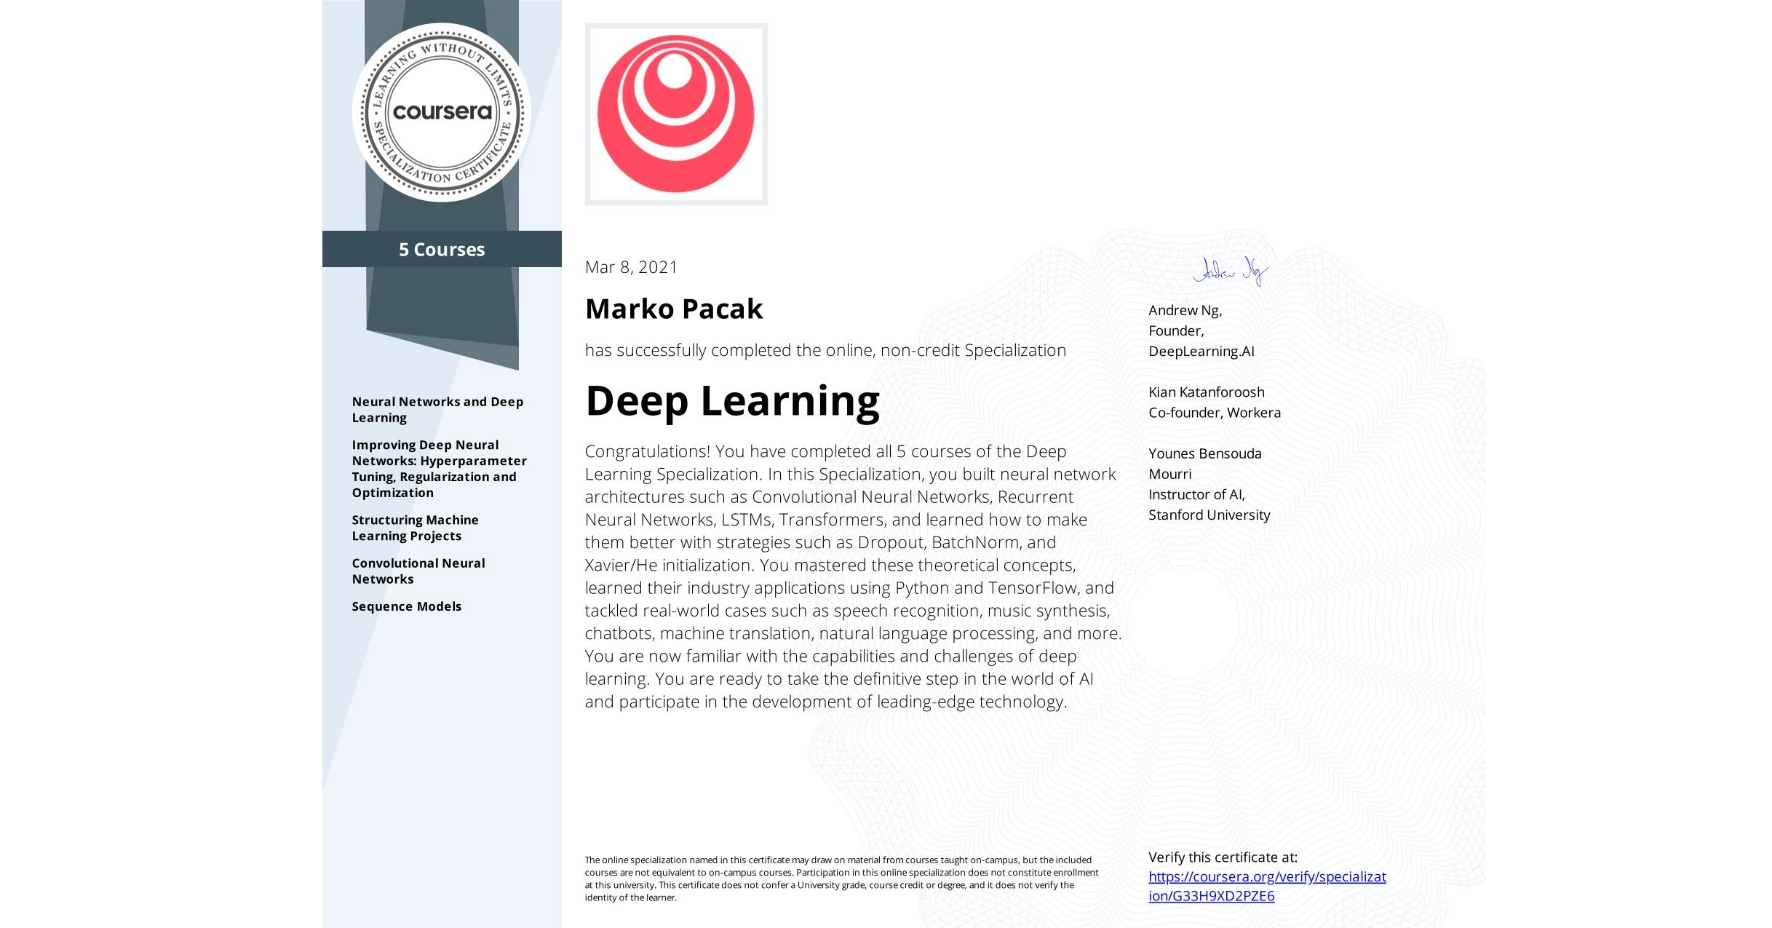 View certificate for Marko Pacak, Deep Learning, offered through Coursera. Congratulations! You have completed all 5 courses of the Deep Learning Specialization.  In this Specialization, you built neural network architectures such as Convolutional Neural Networks, Recurrent Neural Networks, LSTMs, Transformers, and learned how to make them better with strategies such as Dropout, BatchNorm, and Xavier/He initialization. You mastered these theoretical concepts, learned their industry applications using Python and TensorFlow, and tackled real-world cases such as speech recognition, music synthesis, chatbots, machine translation, natural language processing, and more.  You are now familiar with the capabilities and challenges of deep learning. You are ready to take the definitive step in the world of AI and participate in the development of leading-edge technology.